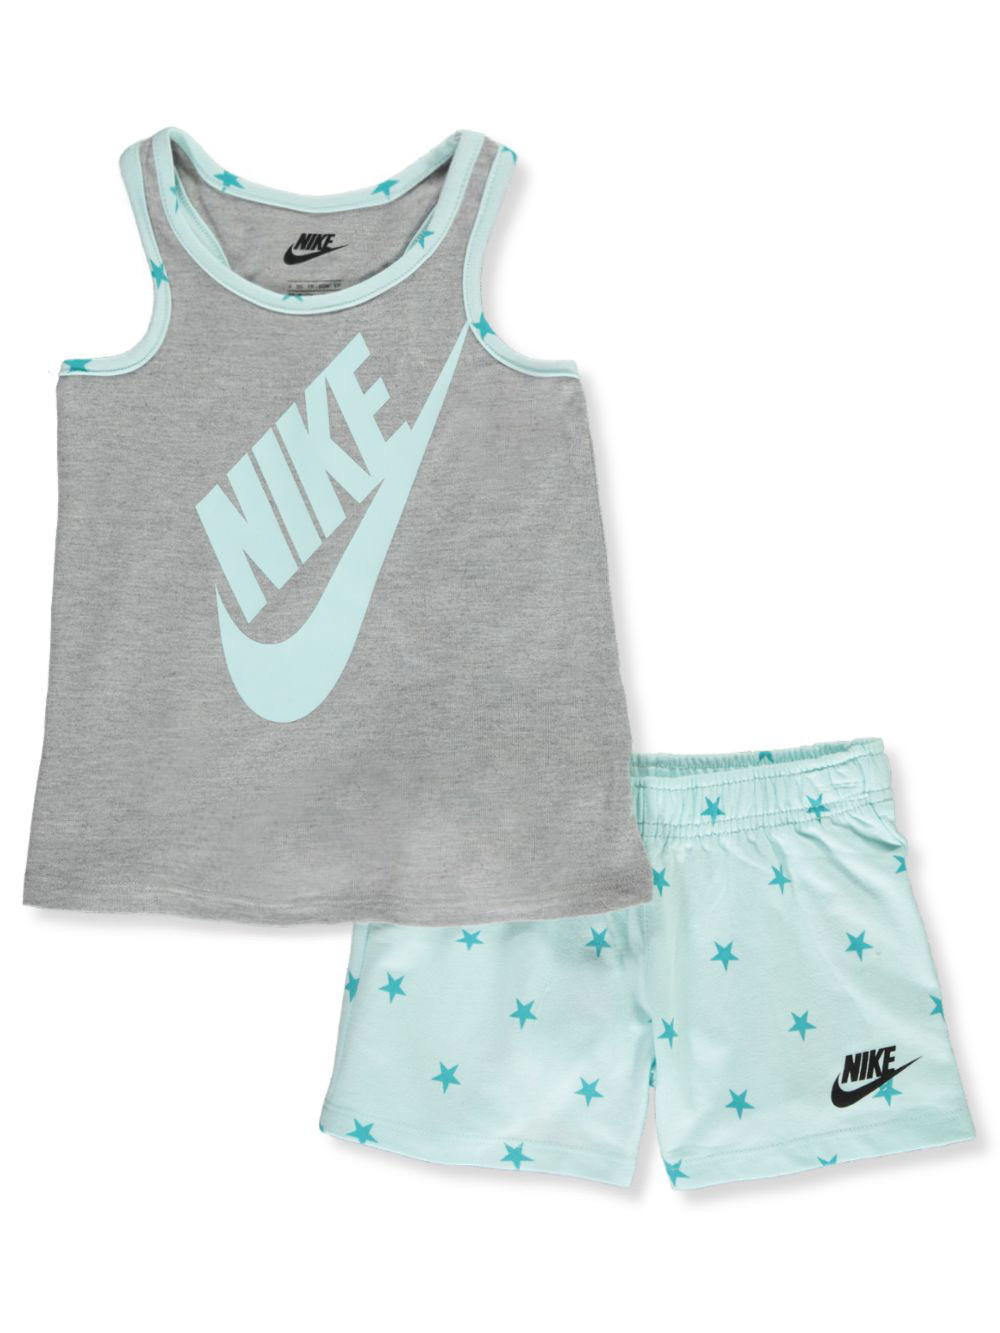 Girls' All-Star 2-Piece Shorts Set Outfit